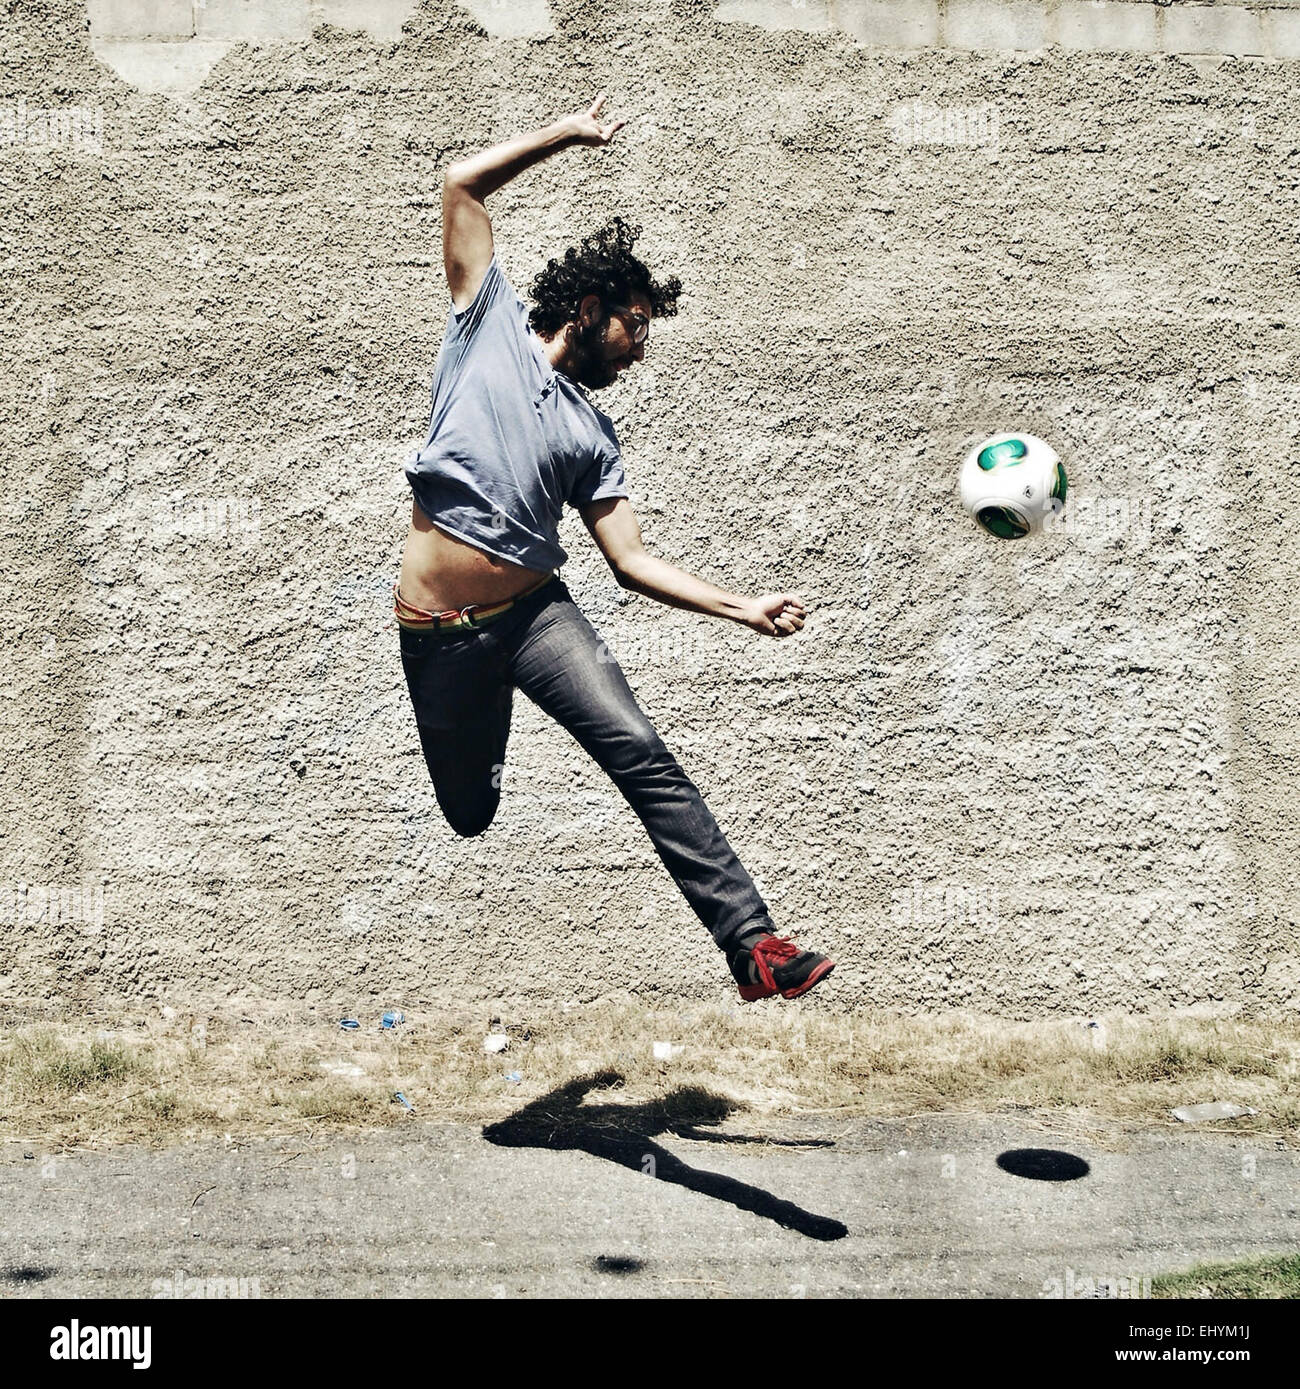 Man playing football in the street Stock Photo